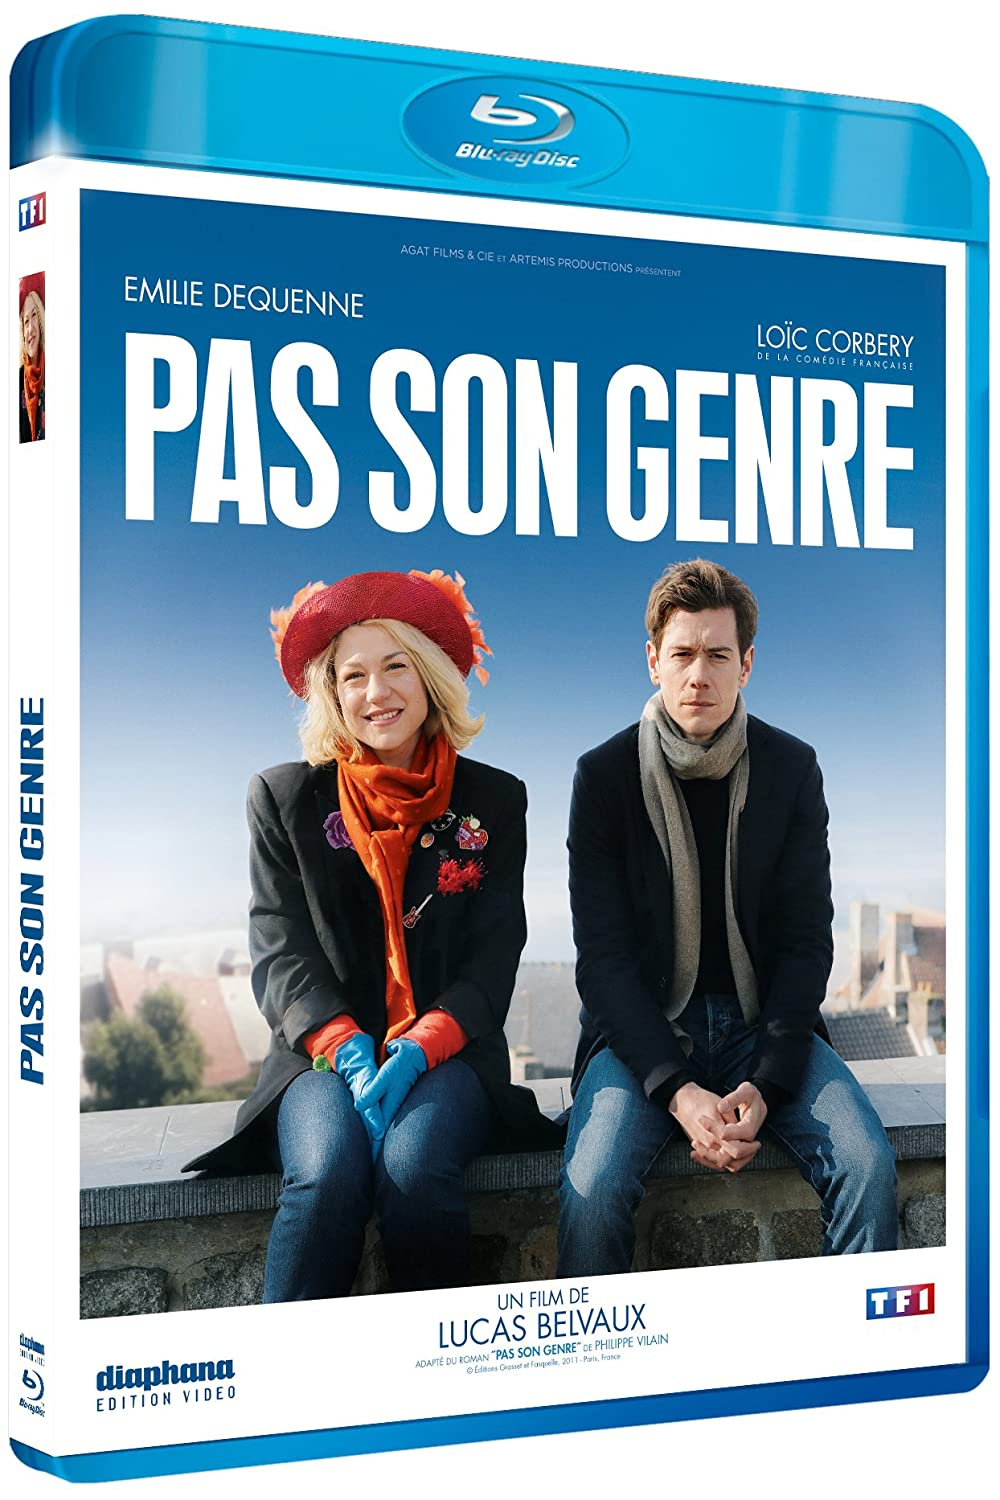 Pas son genre (2014) [BLURAY 720p]